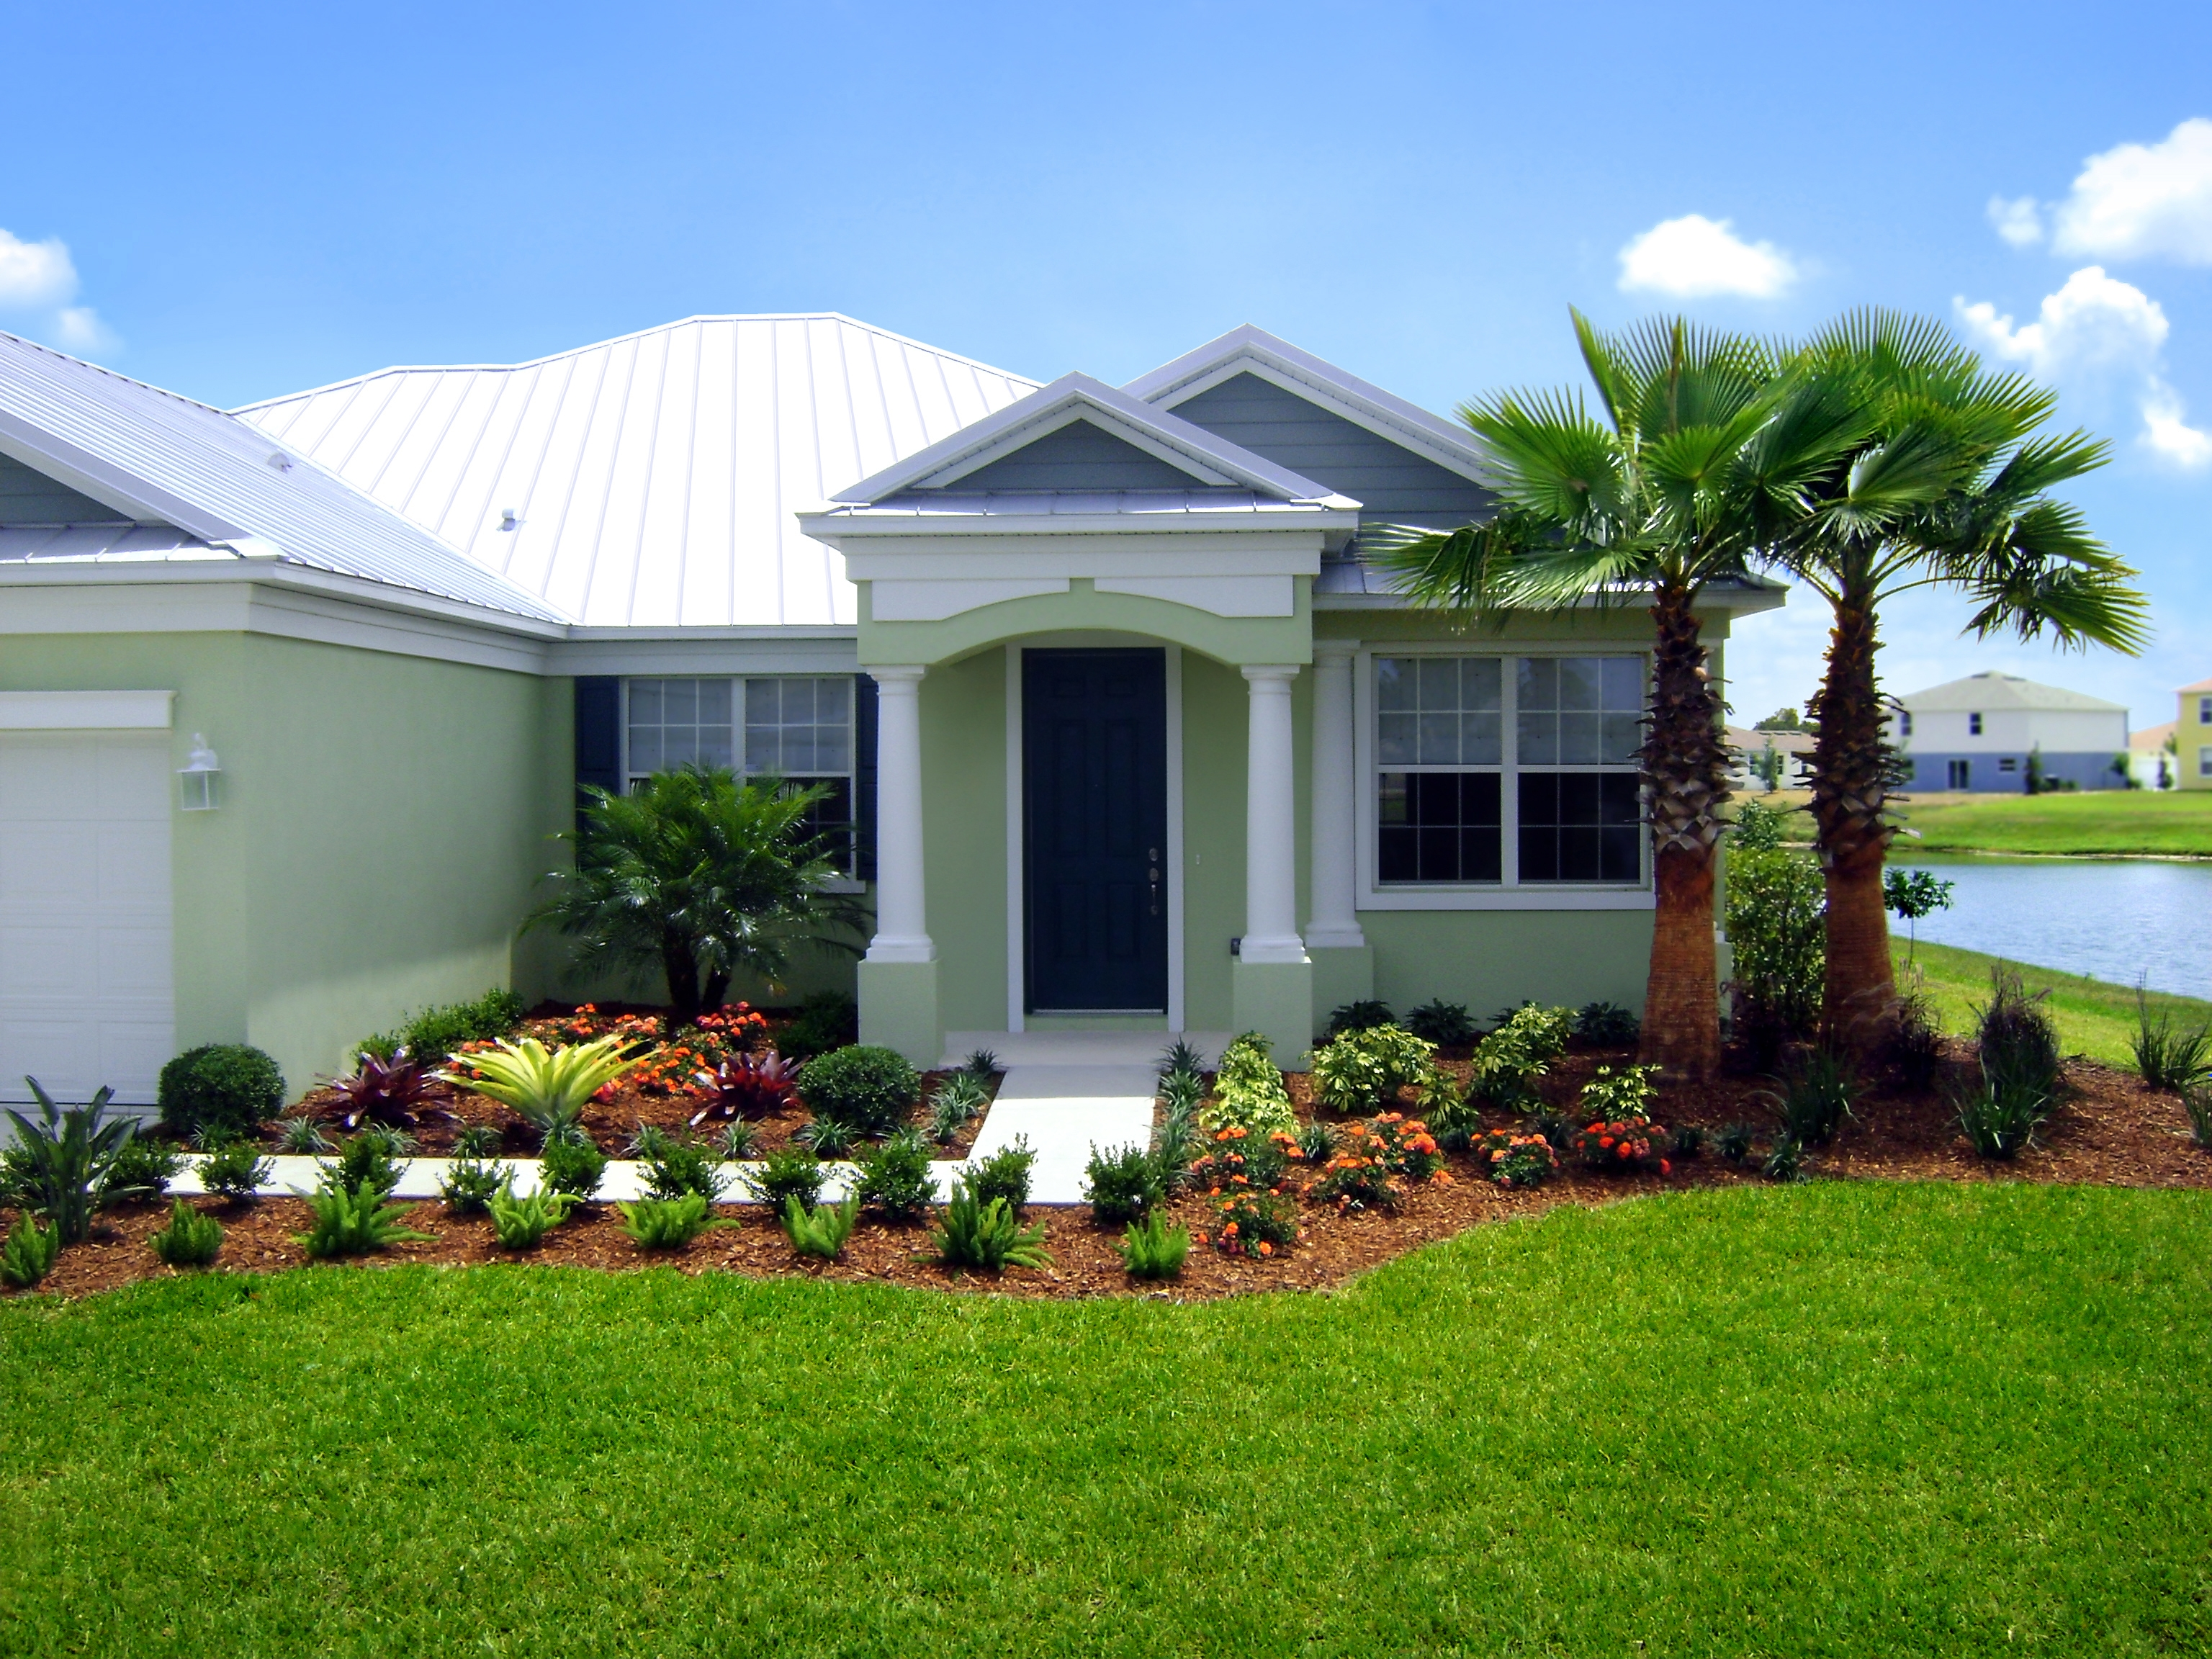 Buy washingtonian palm trees in miami ft lauderdale kendall Olive garden citrus heights ca